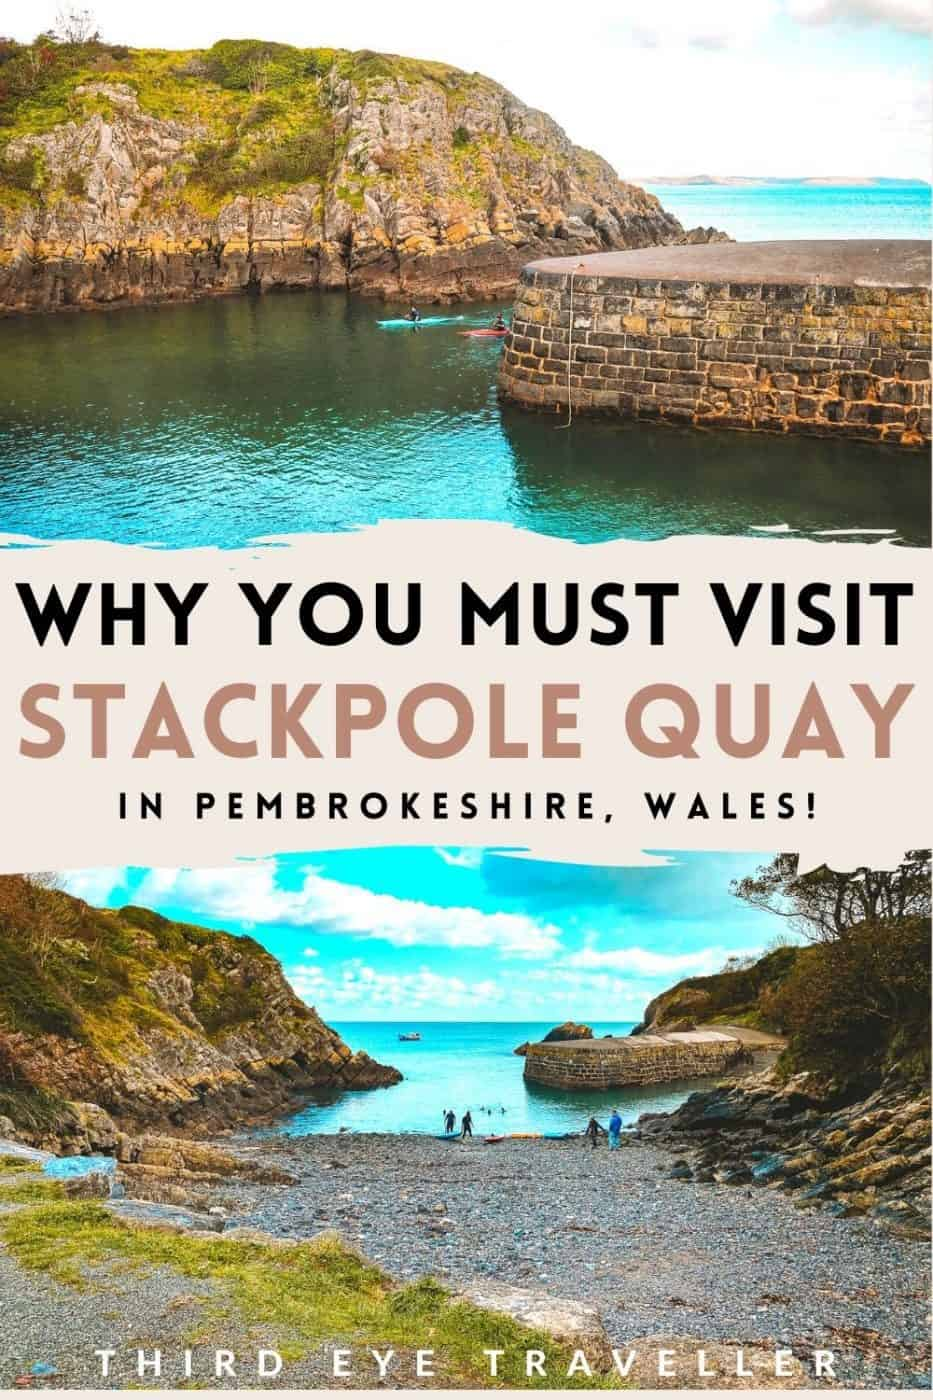 How to visit Stackpole Quay in Pembrokeshire